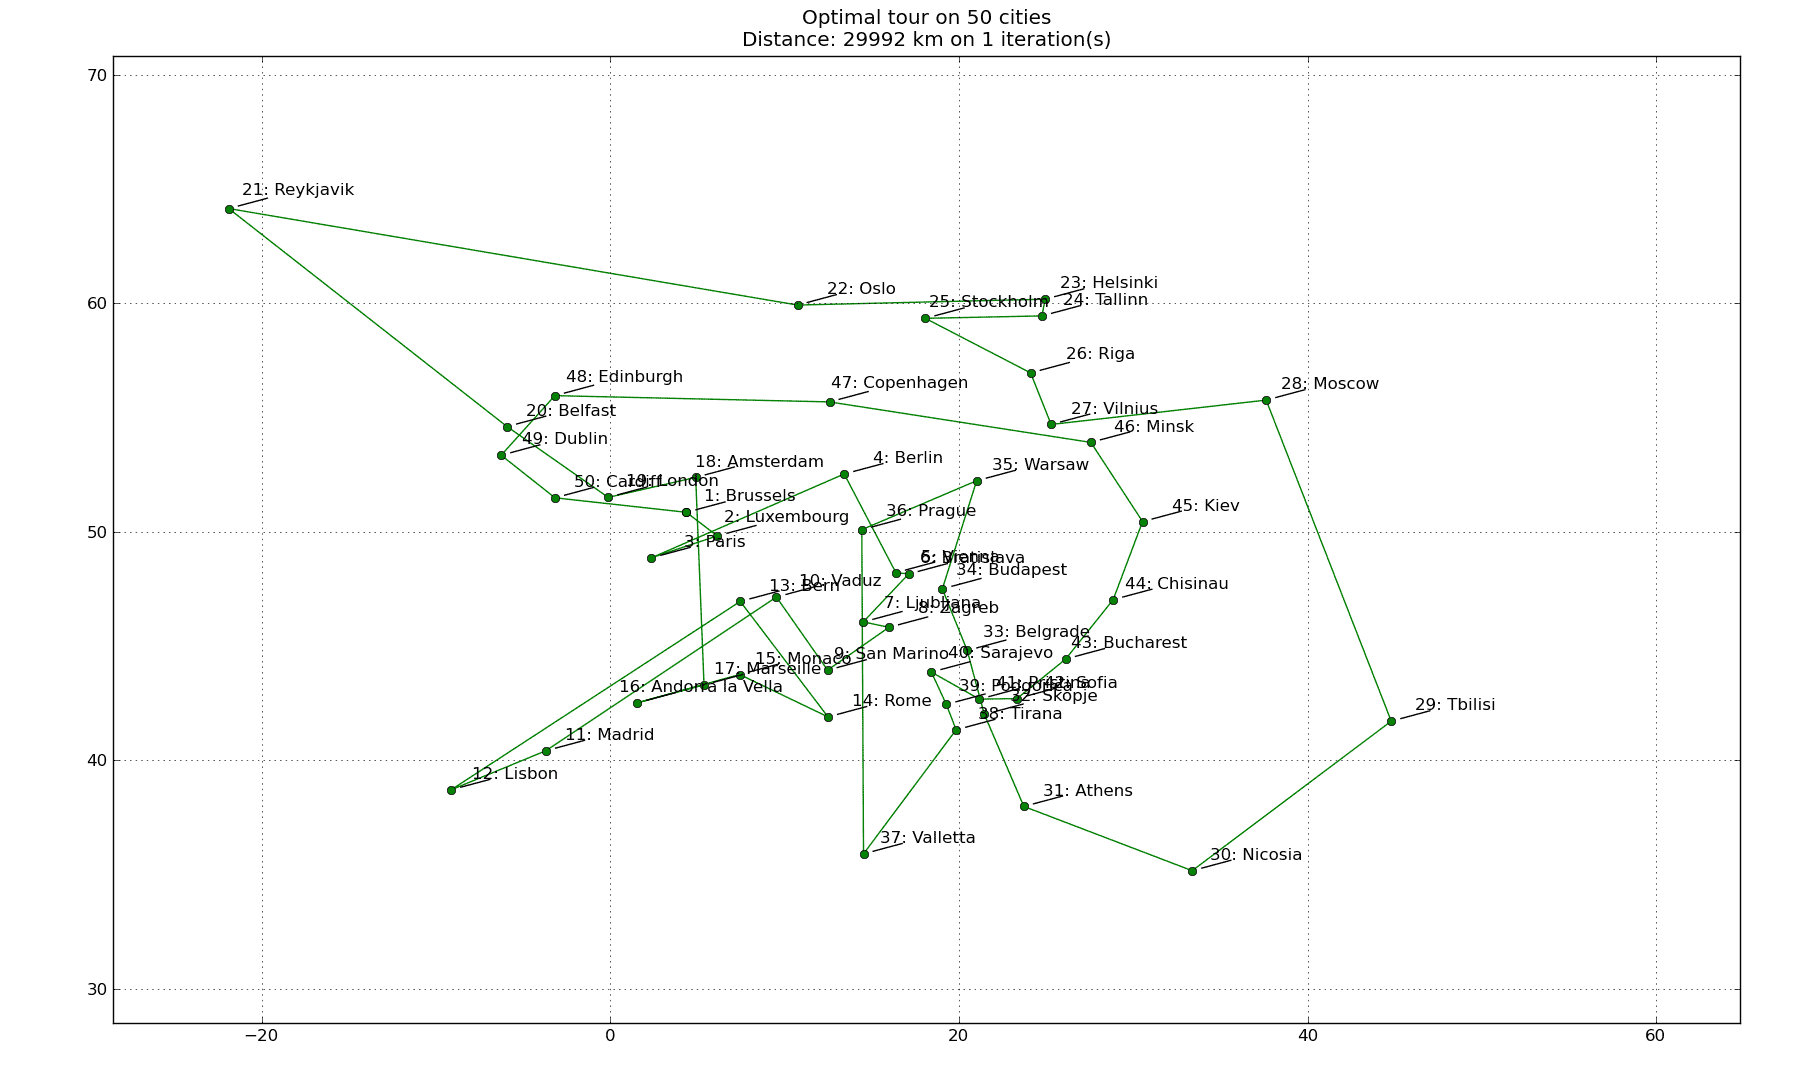 Simulated annealing applied to the traveling salesman problem   Code